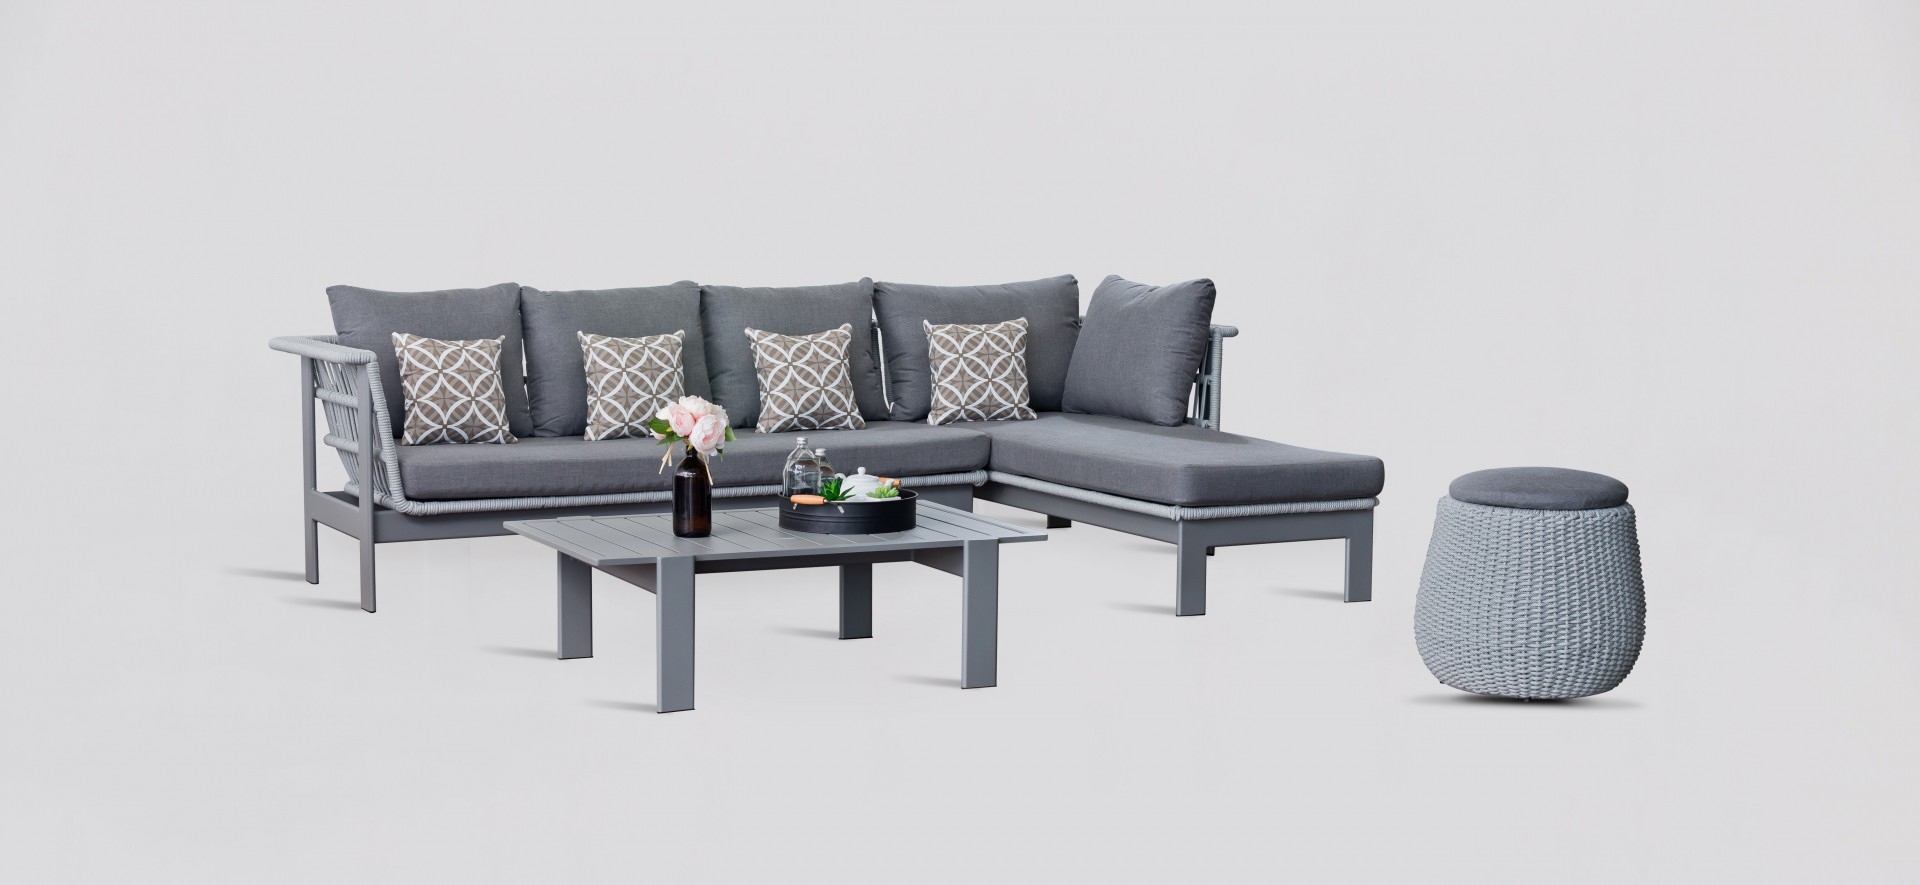 Grey Outdoor Lounge Set - Valencia